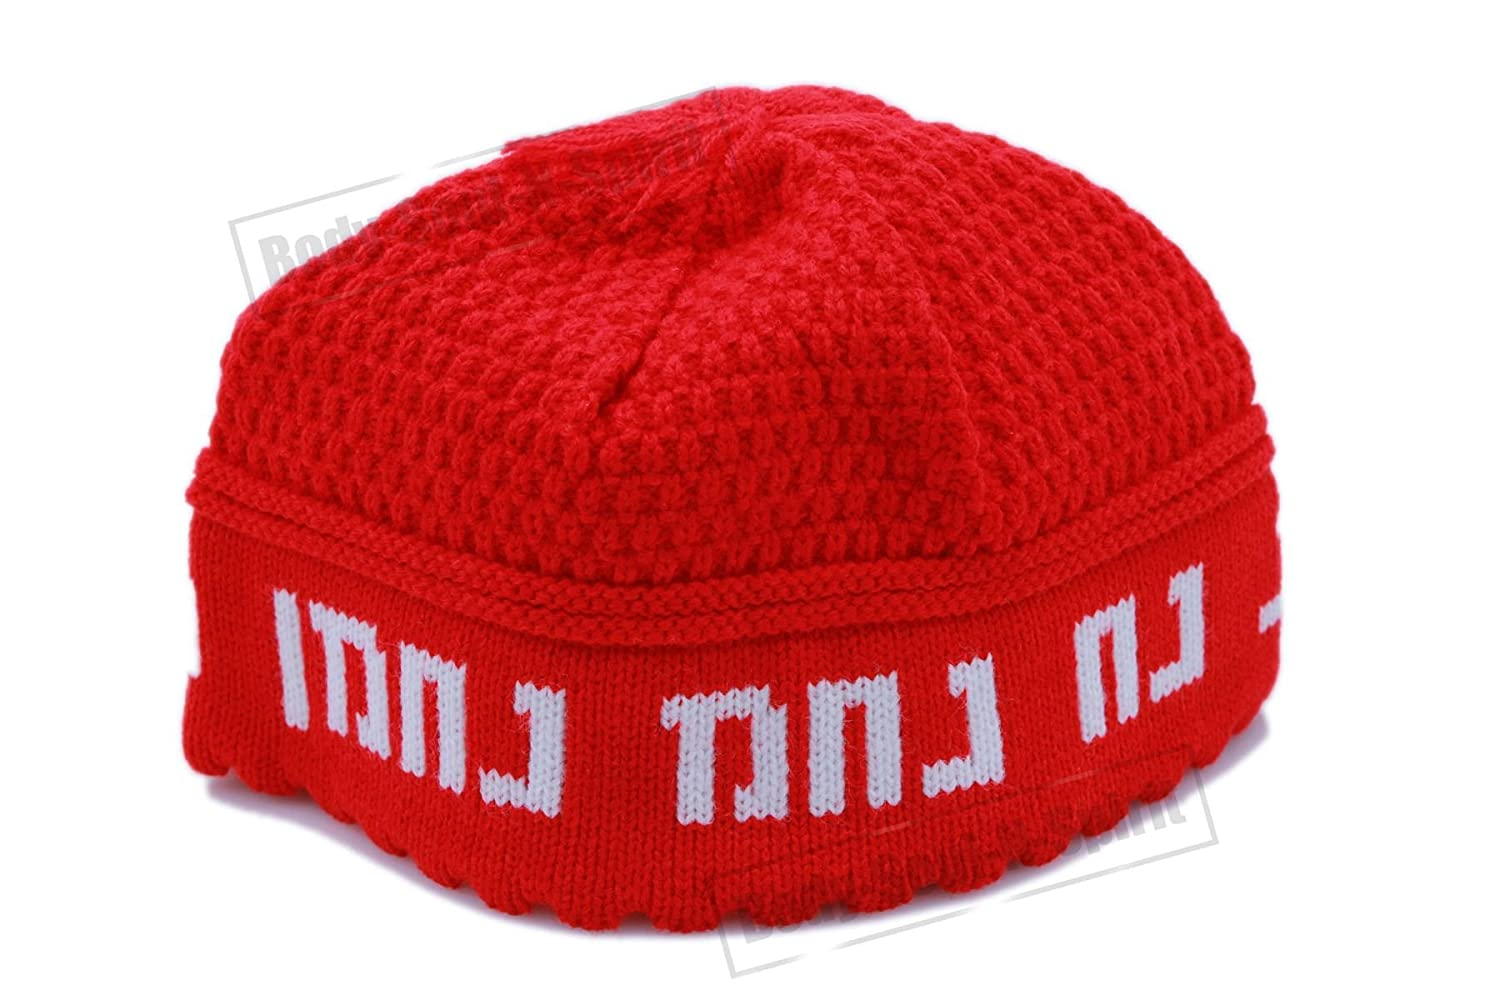 Amazon.com: Red Rabbi Na Nach Nachman Knitted Kippah Yarmulke Tribal ...